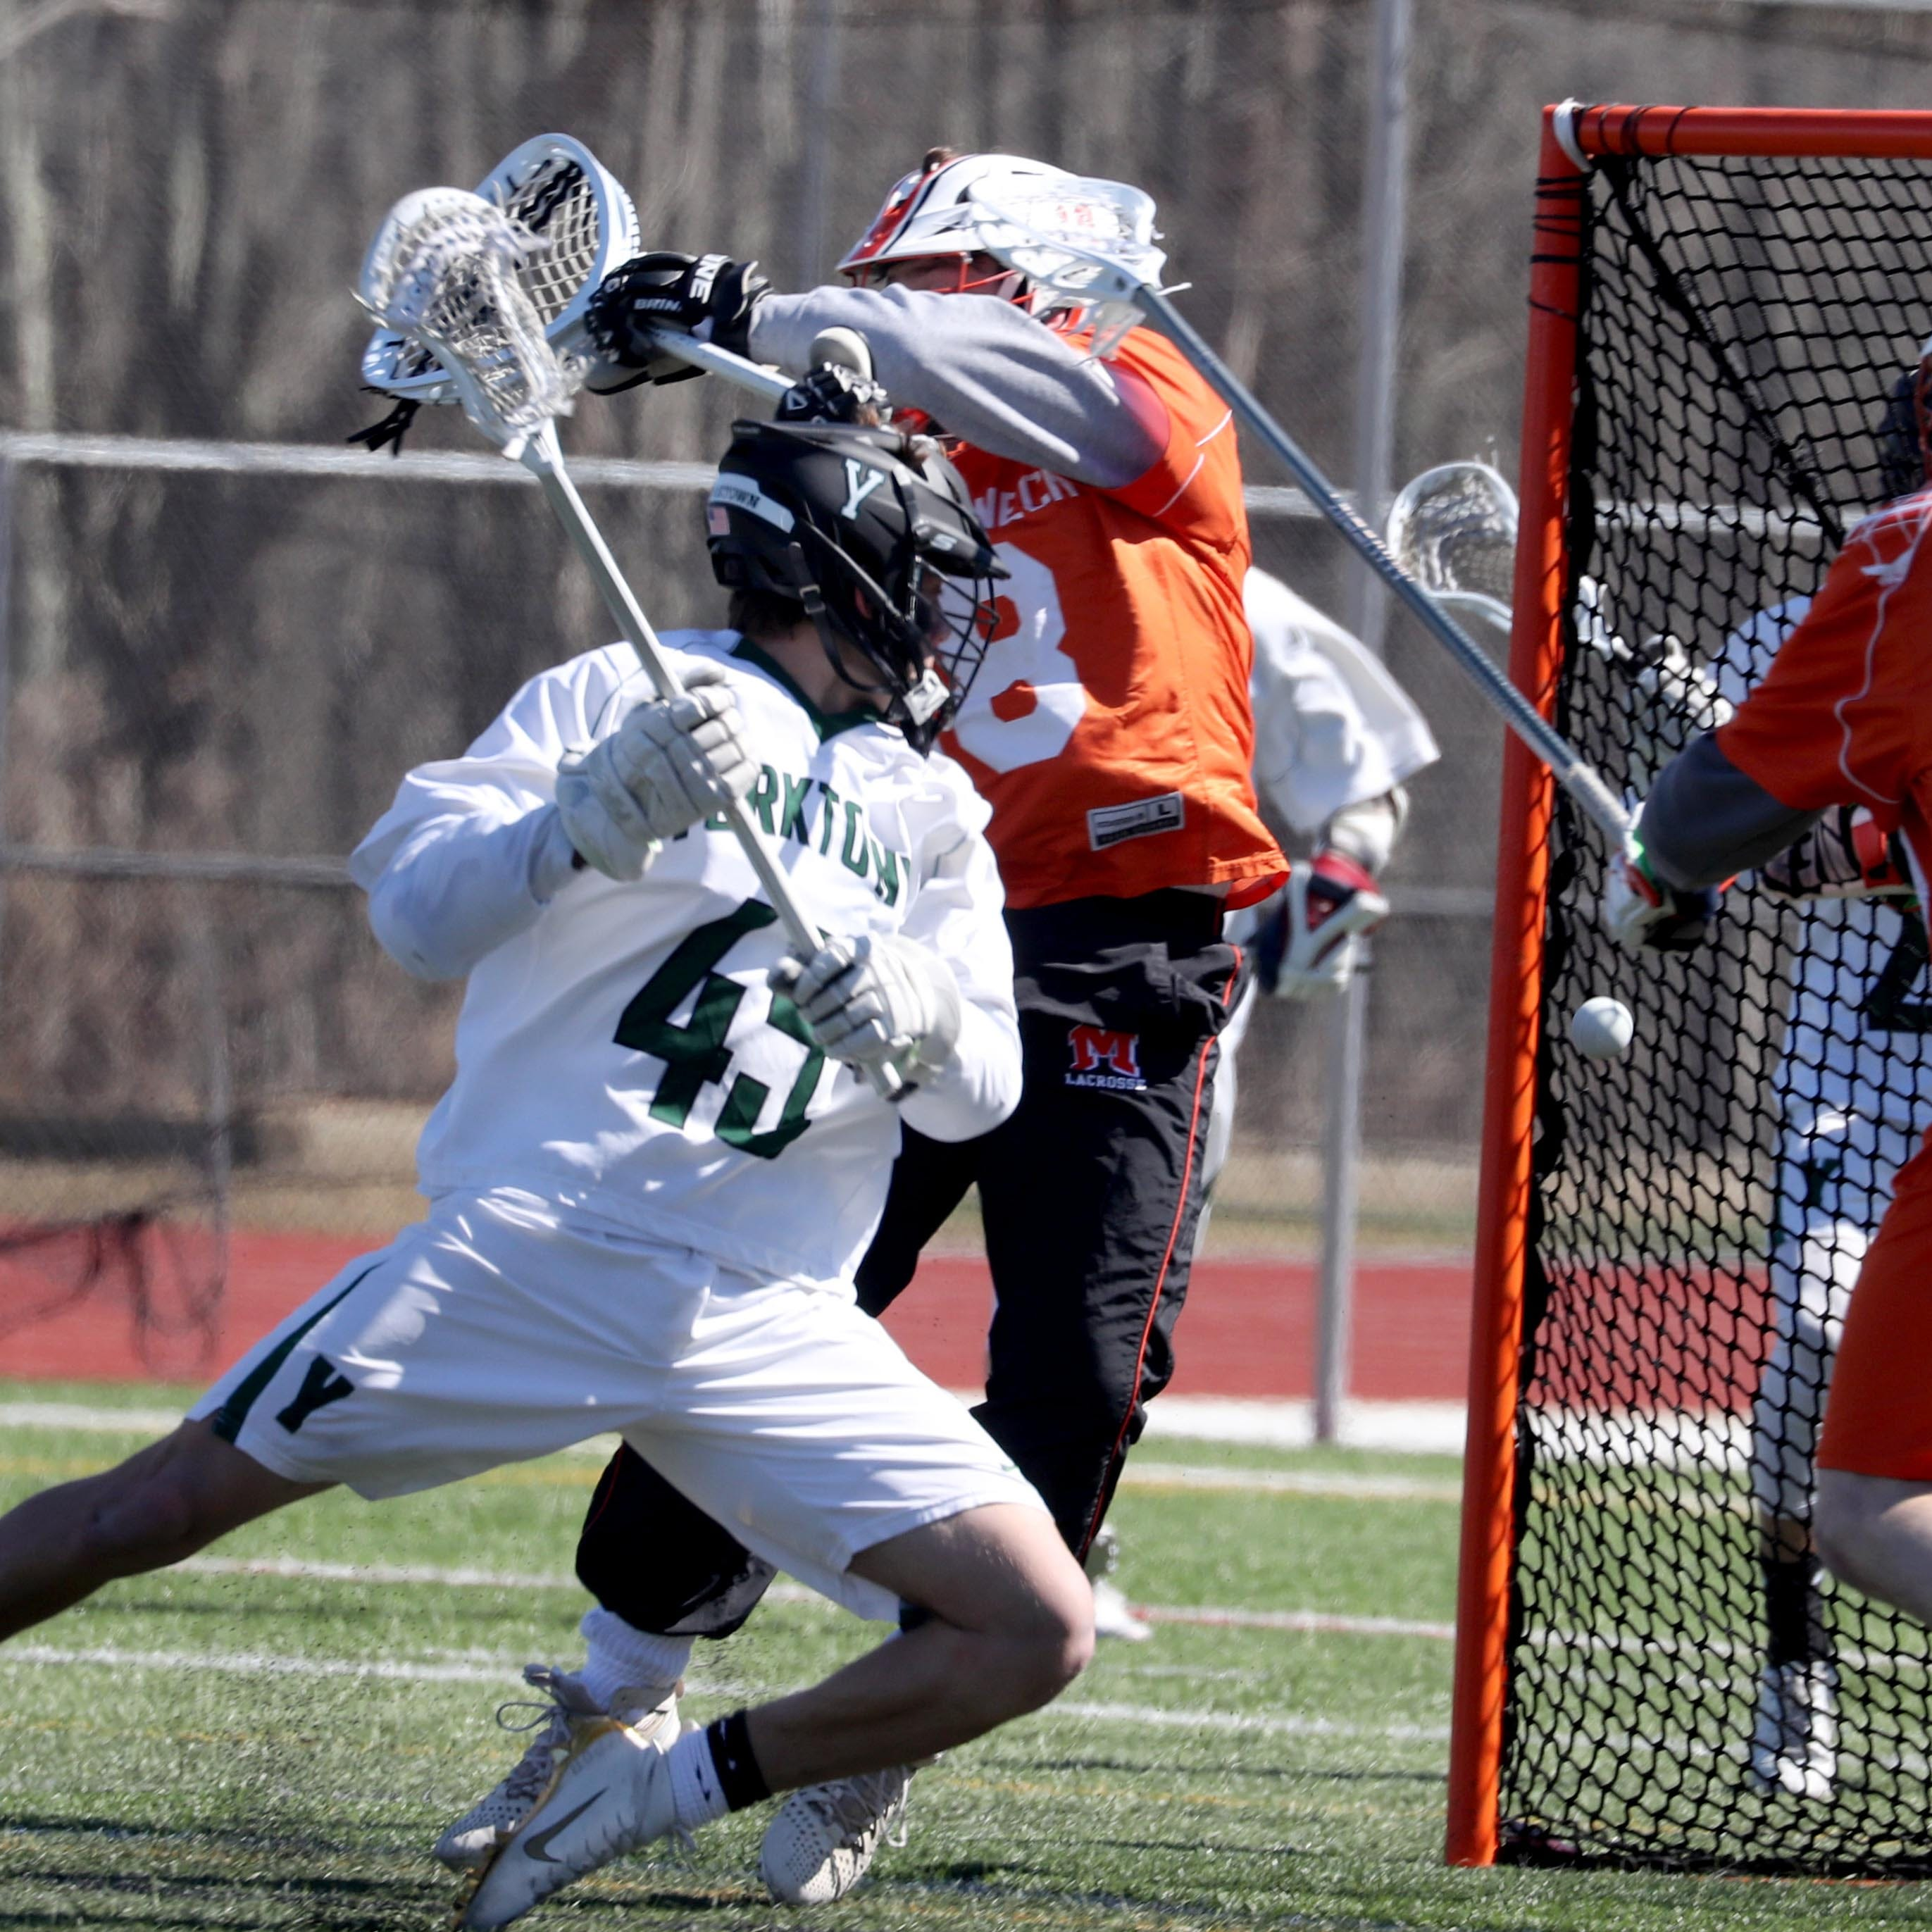 Boys lacrosse: Yorktown holds off Mamaroneck in season opener